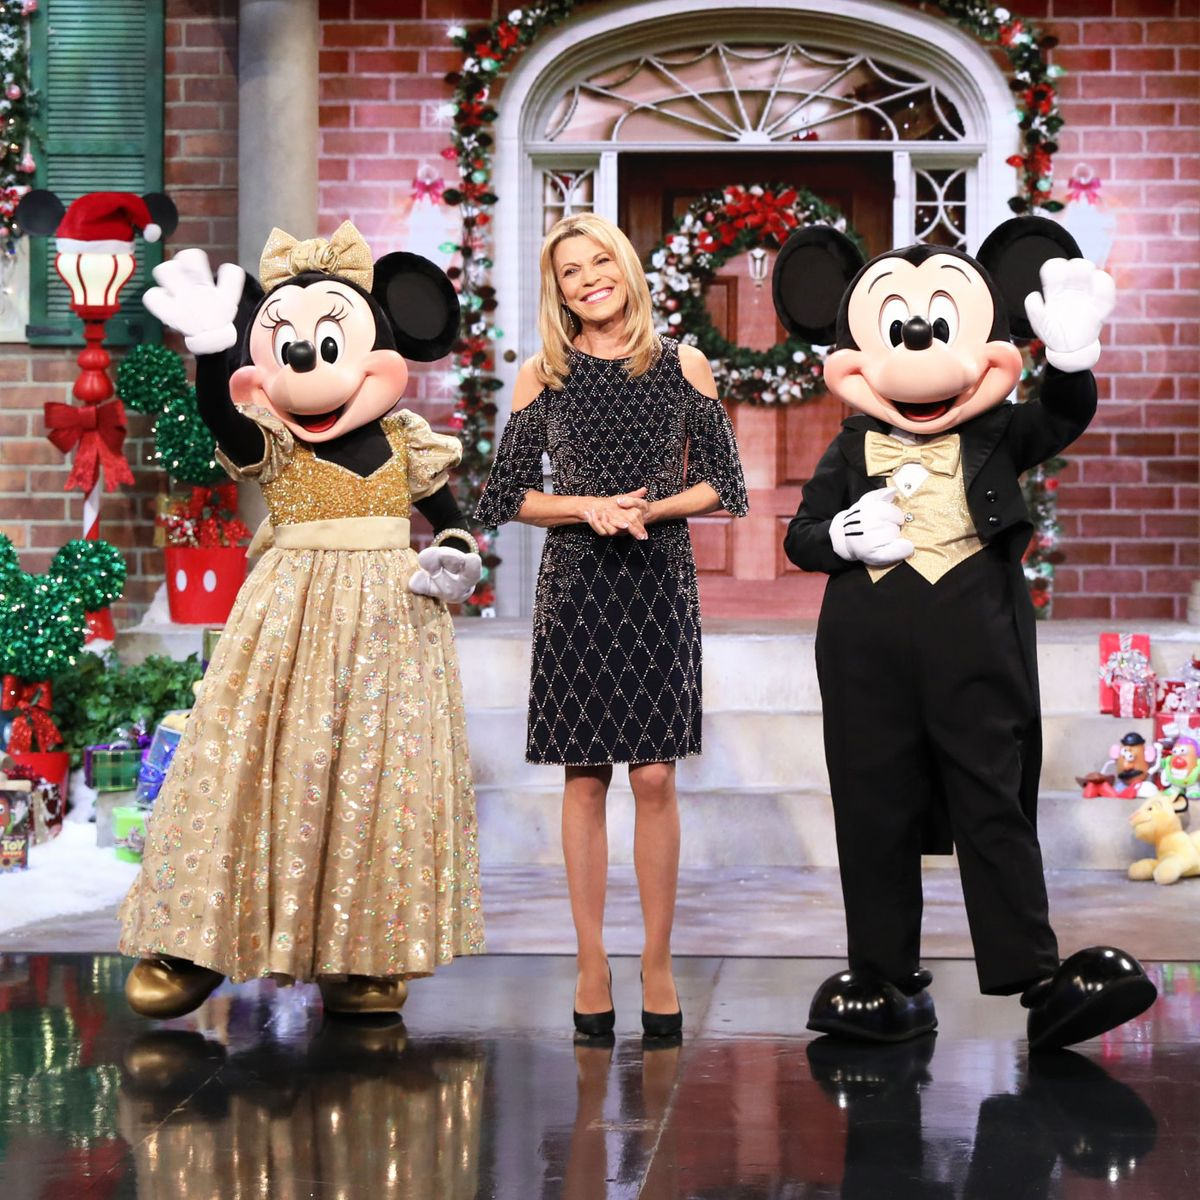 Interview Vanna White On Hosting Wheel Of Fortune